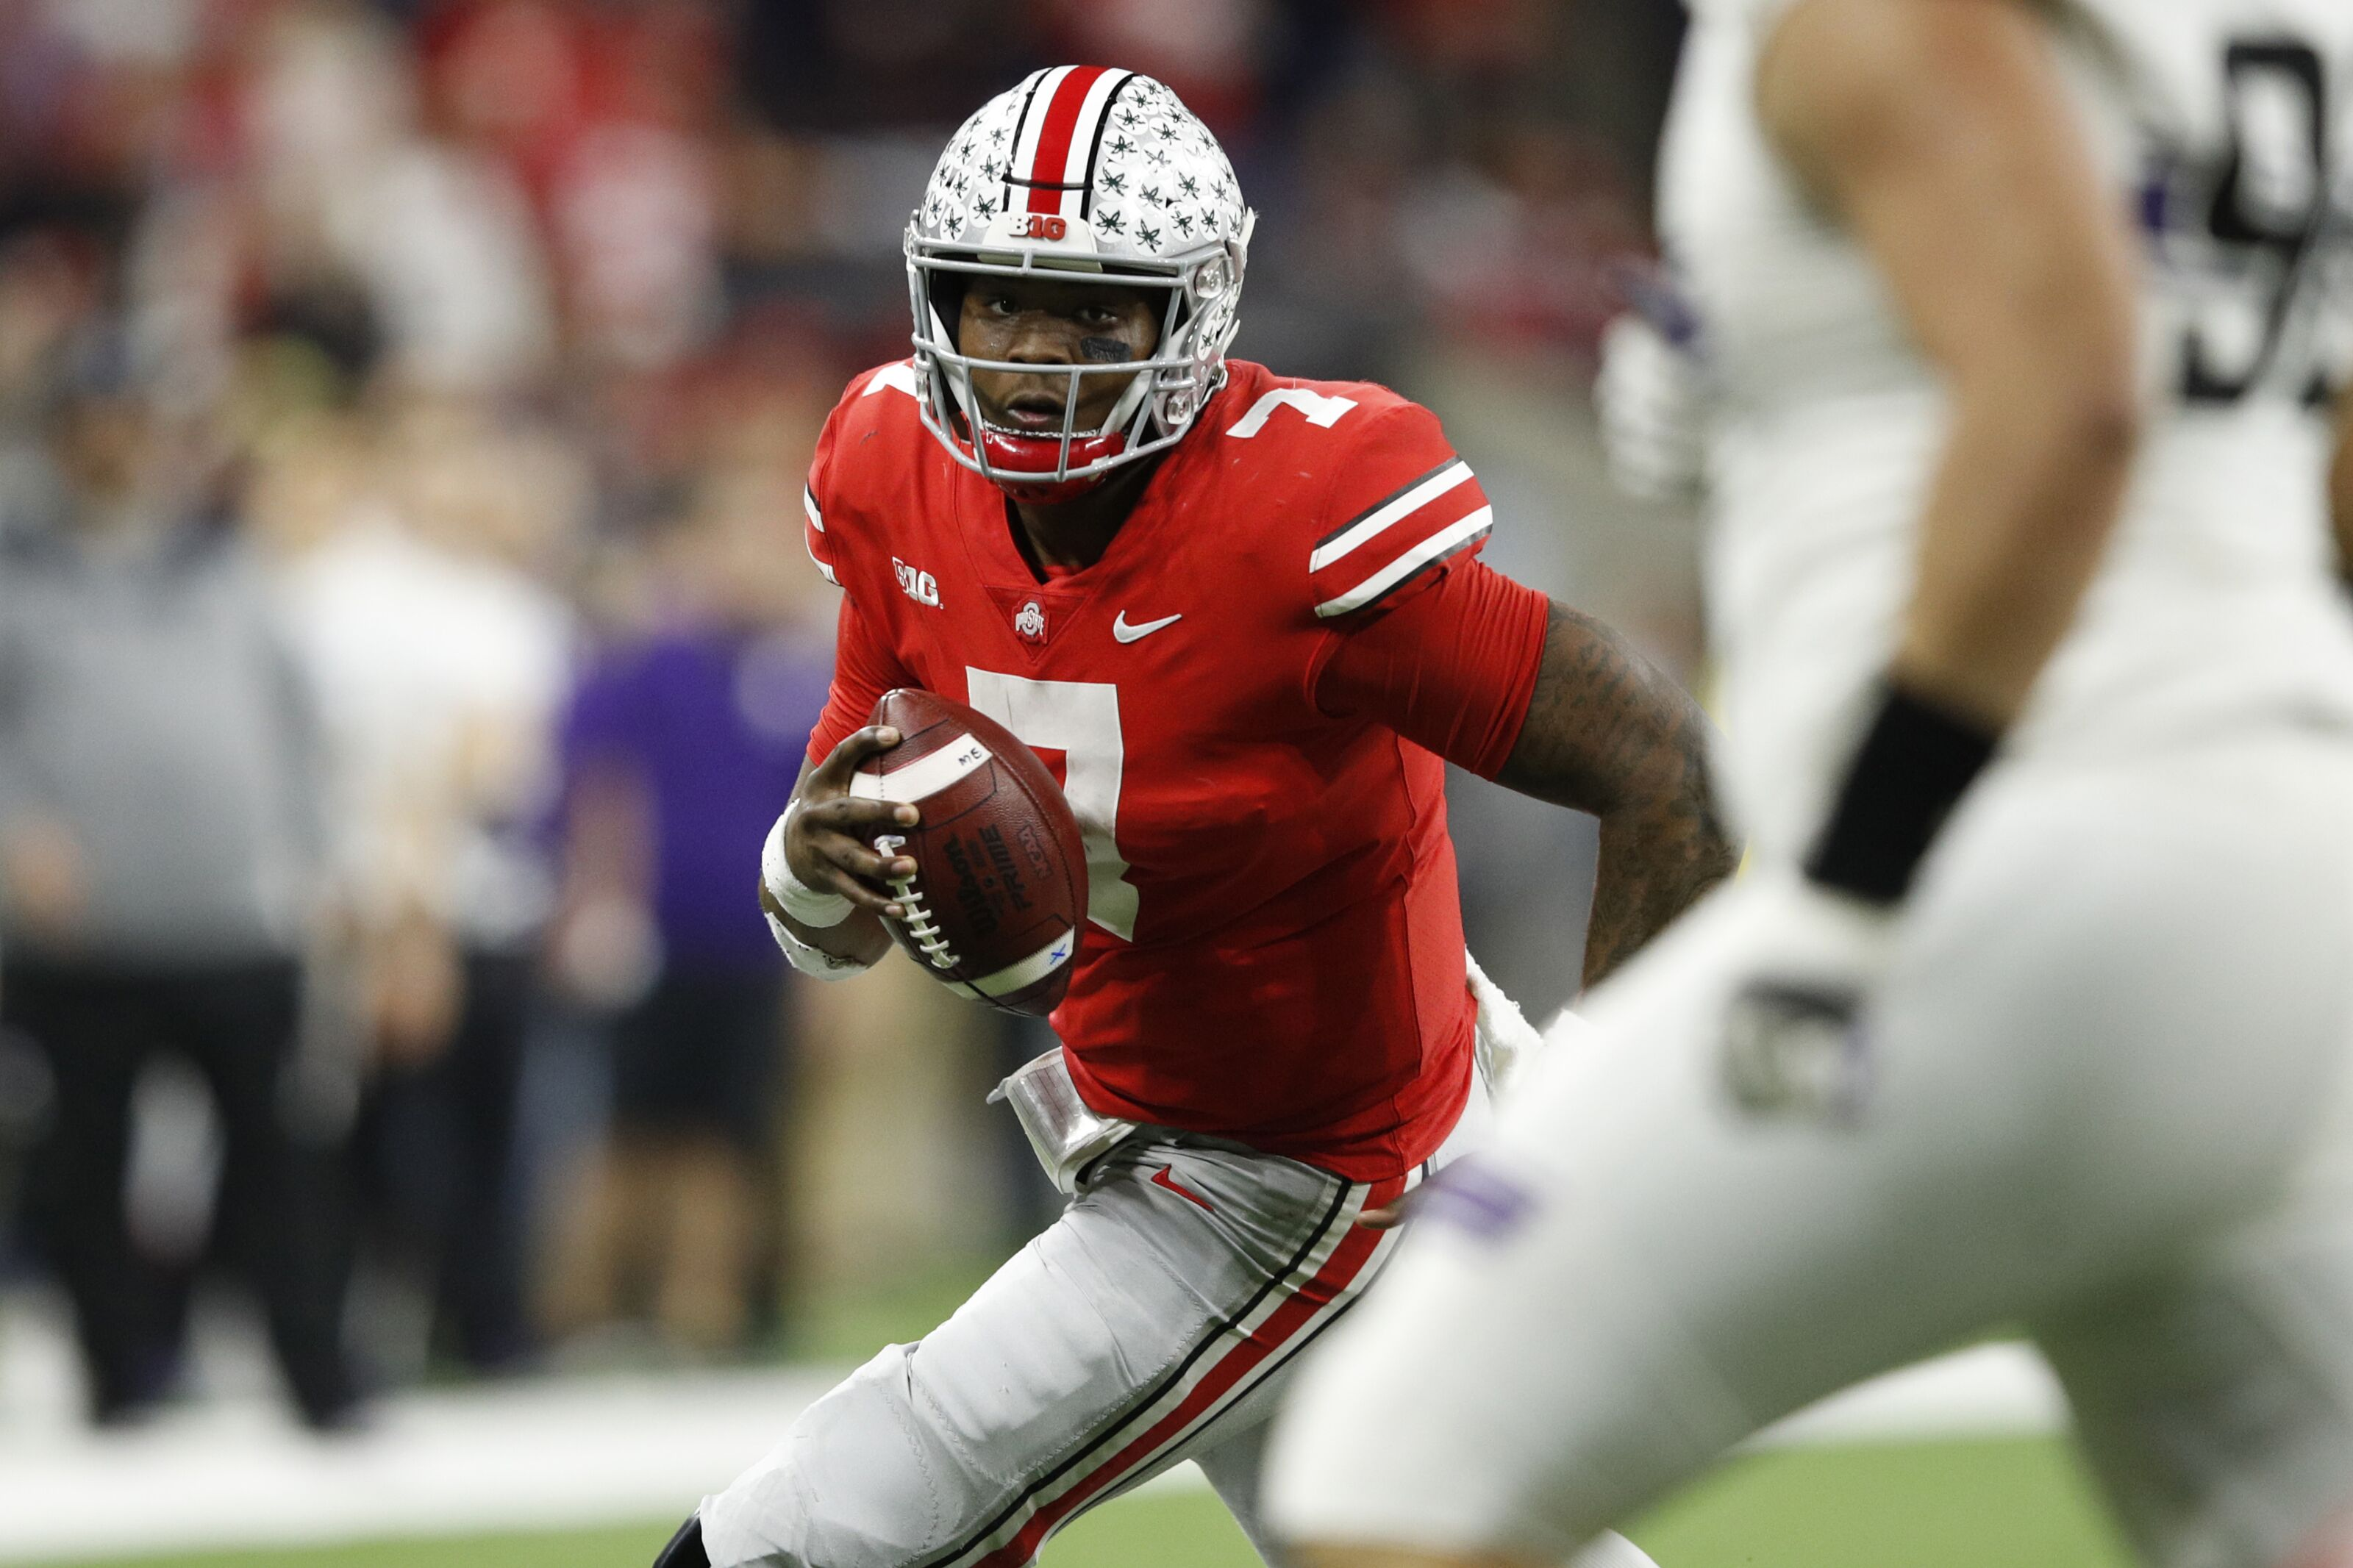 NFL Draft Questions: Is Dwayne Haskins the next Mitch Trubisky?